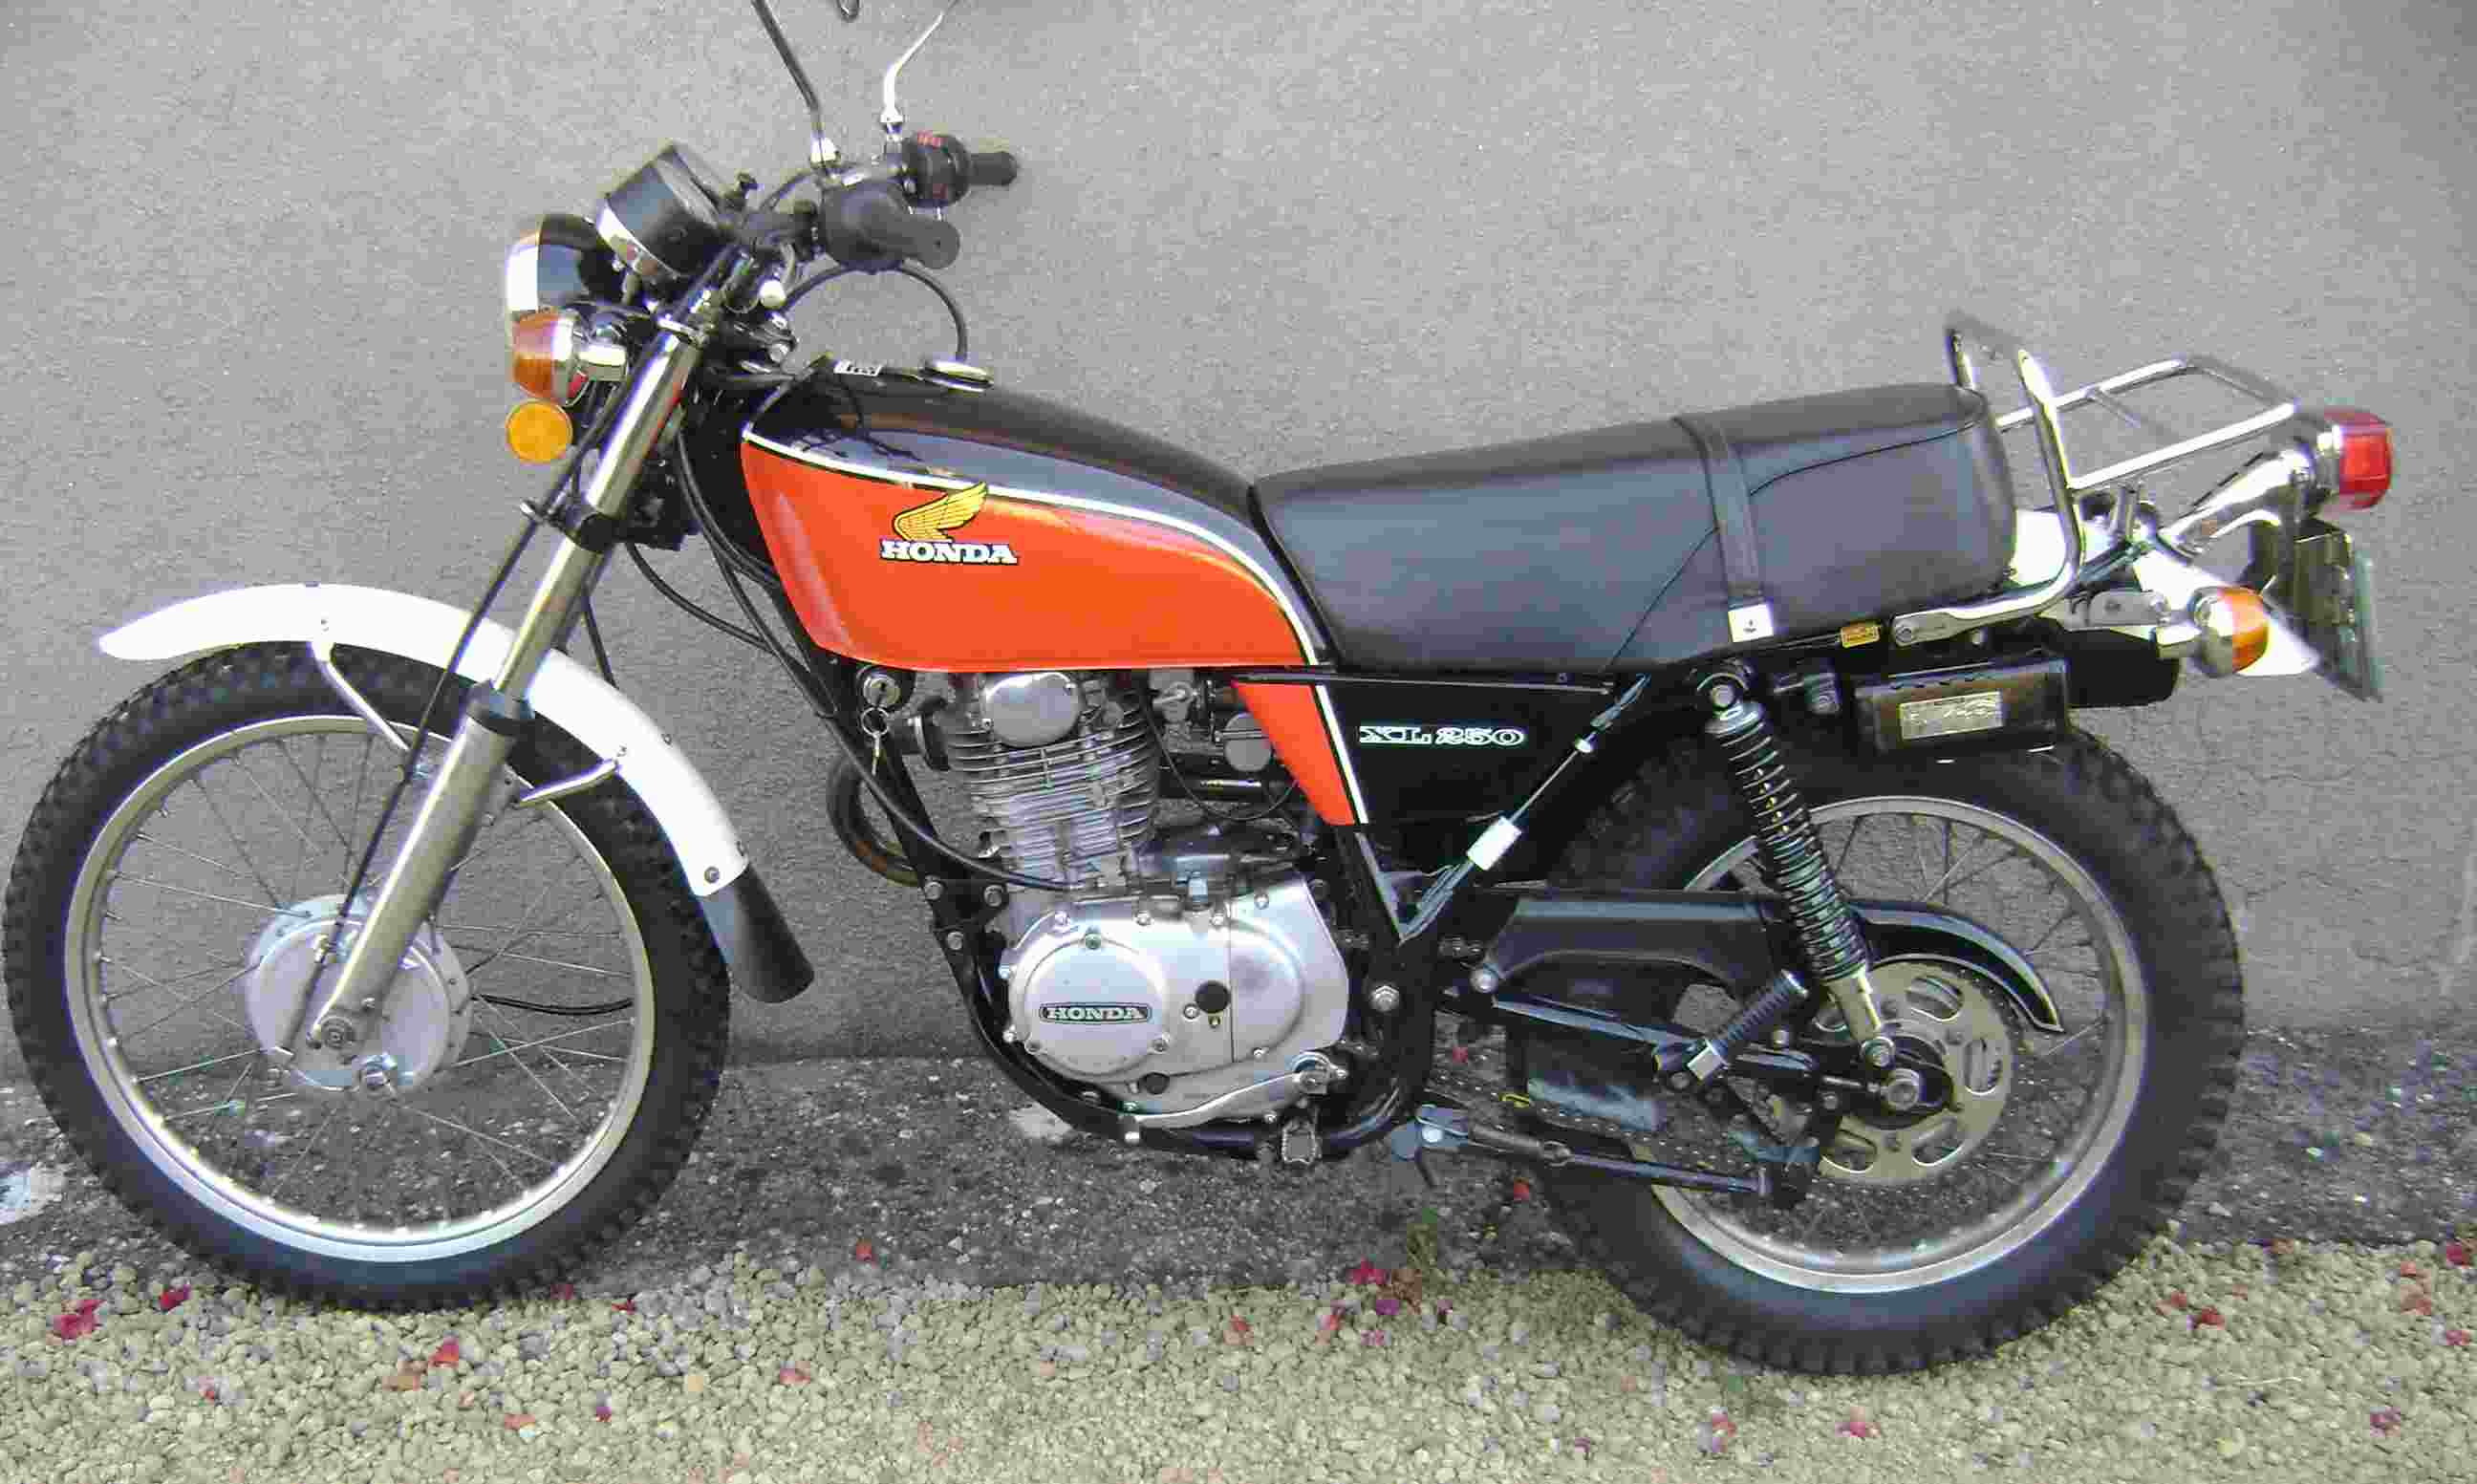 Cb350f Wiring Harness Enthusiast Diagrams 1974 Cb550 Diagram Smart 1976 Honda Cb750 Cb400f Elsalvadorla Engine Connectors